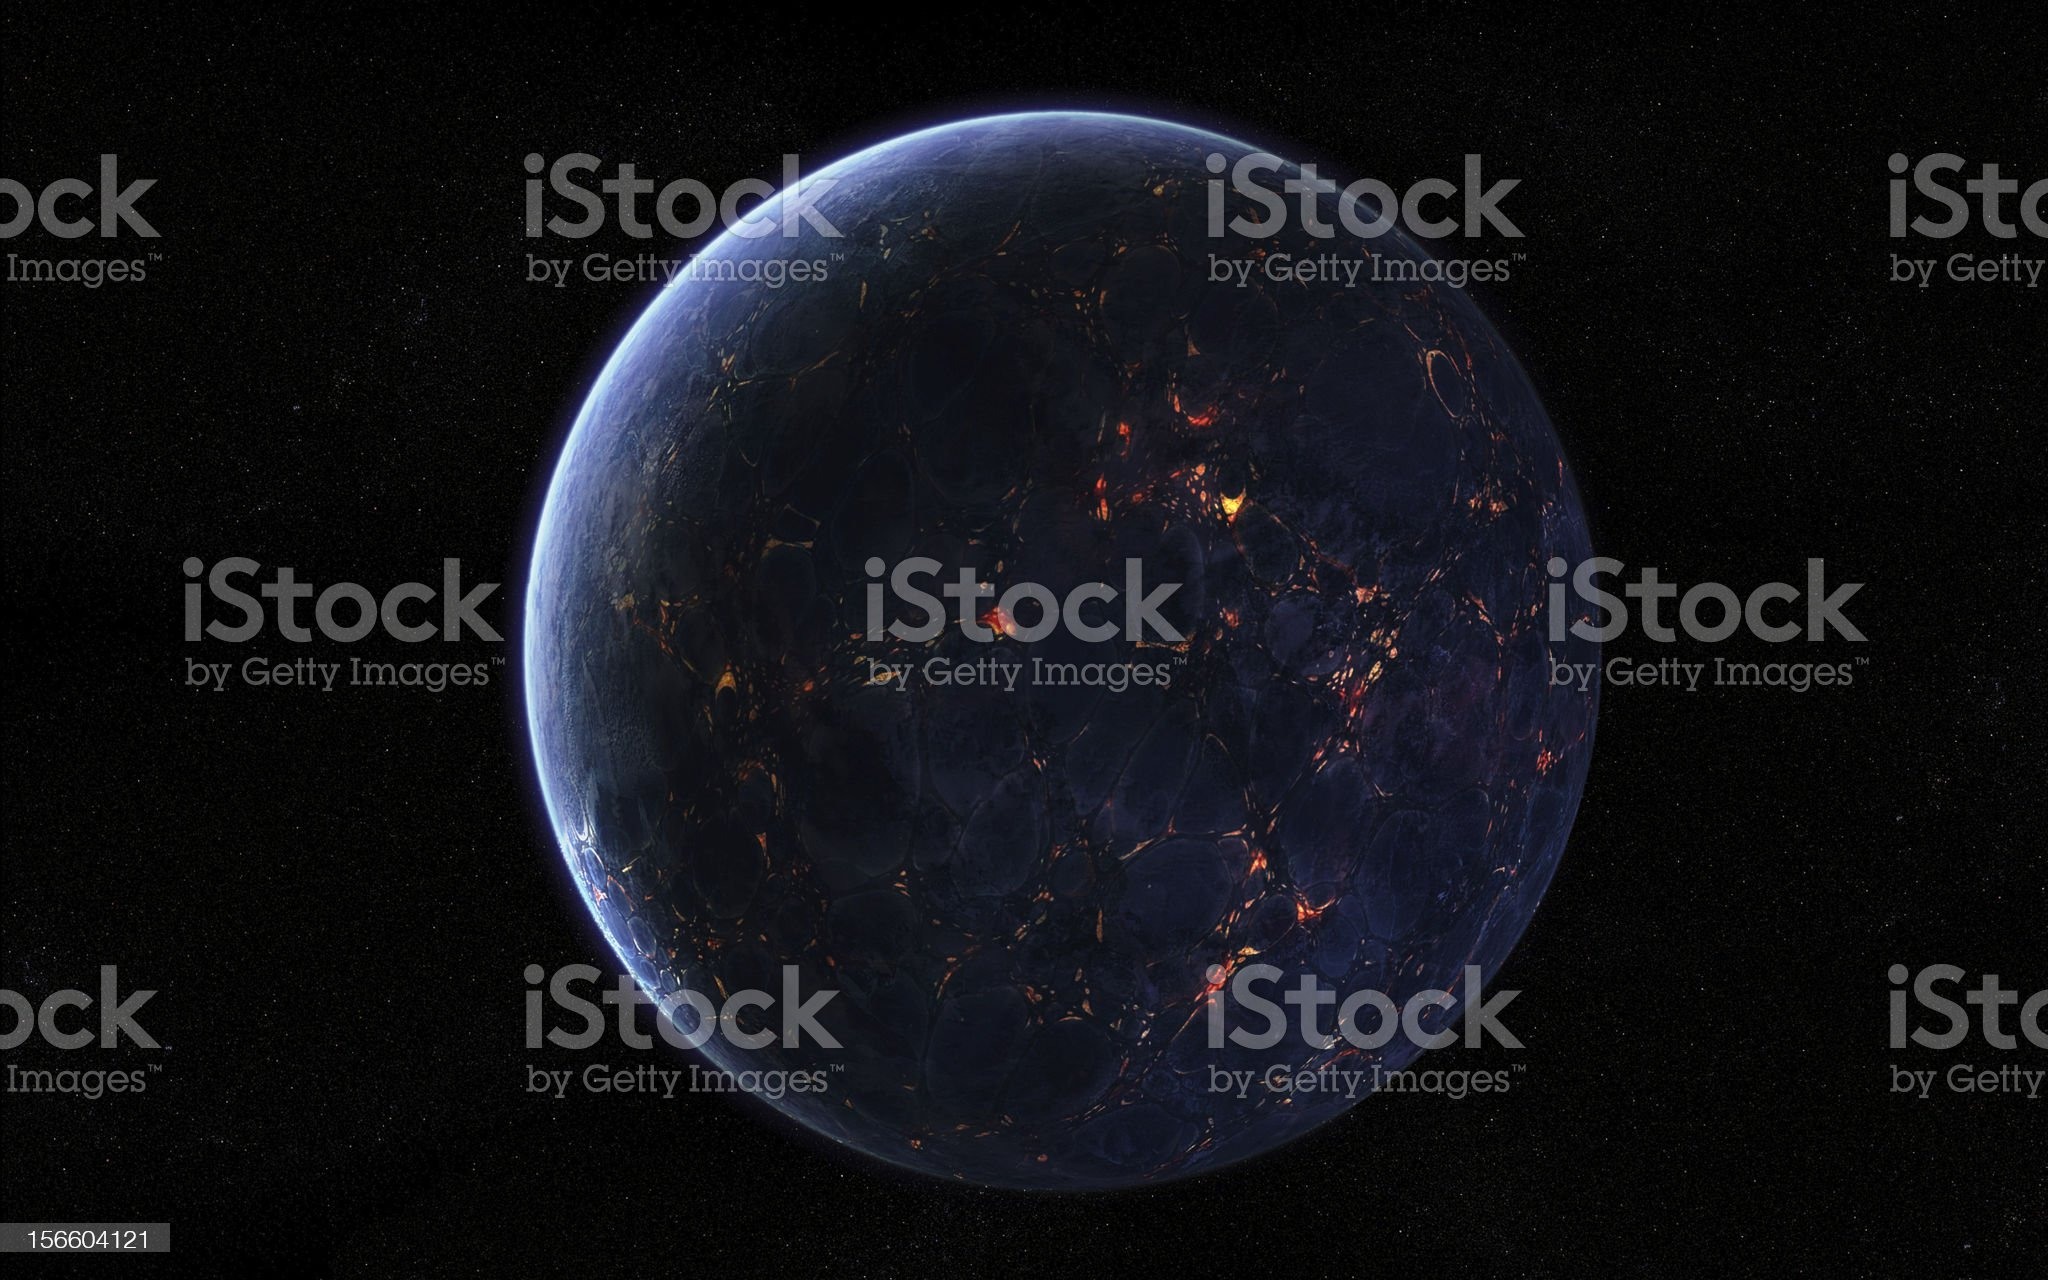 Extraterrestrial Planet royalty-free stock photo